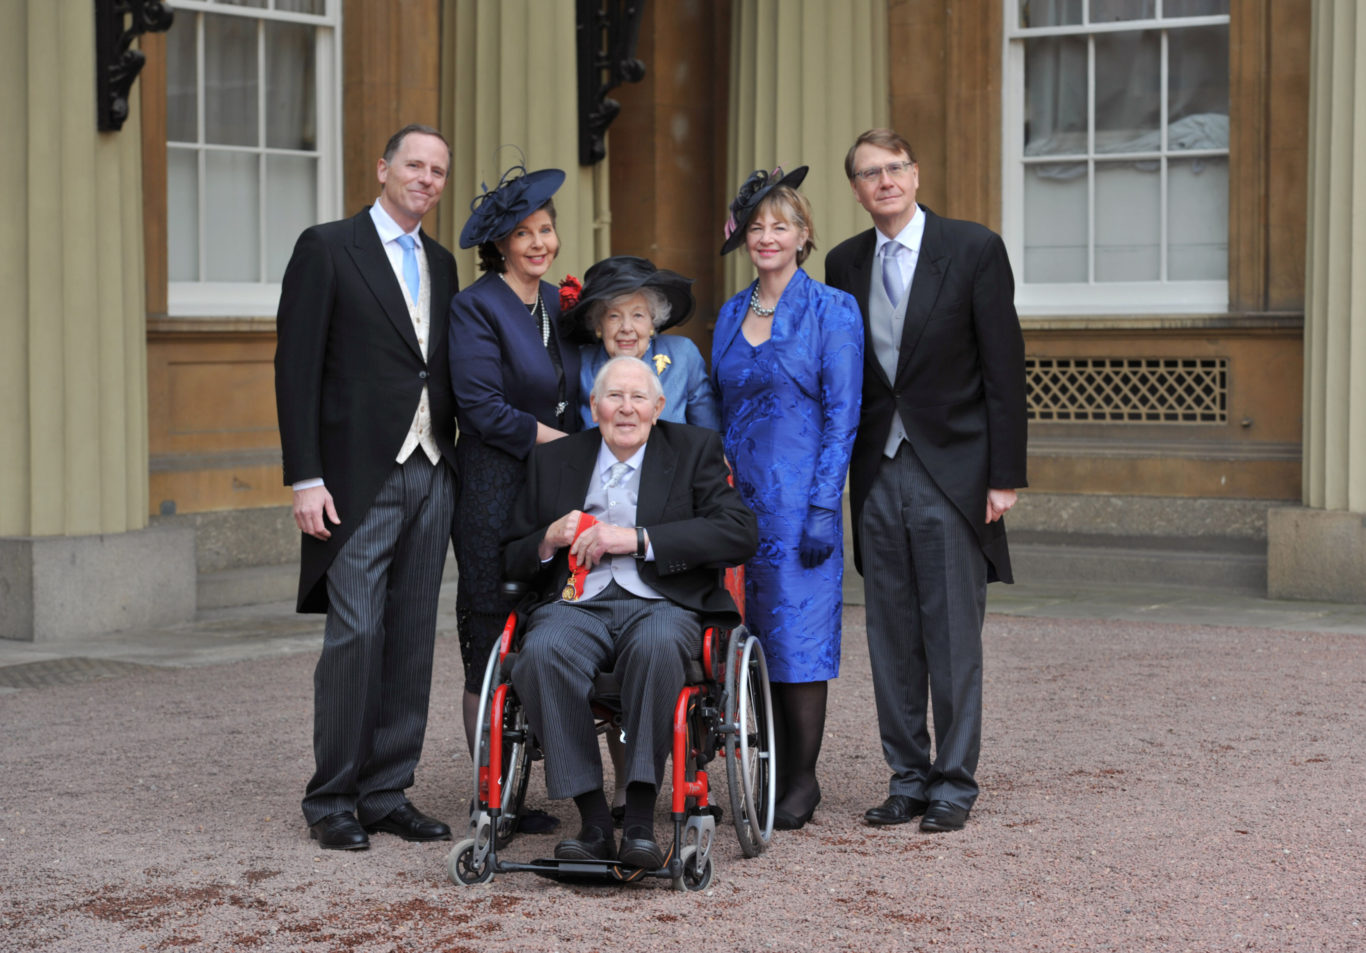 Outside Buckingham Palace with his family (PA)